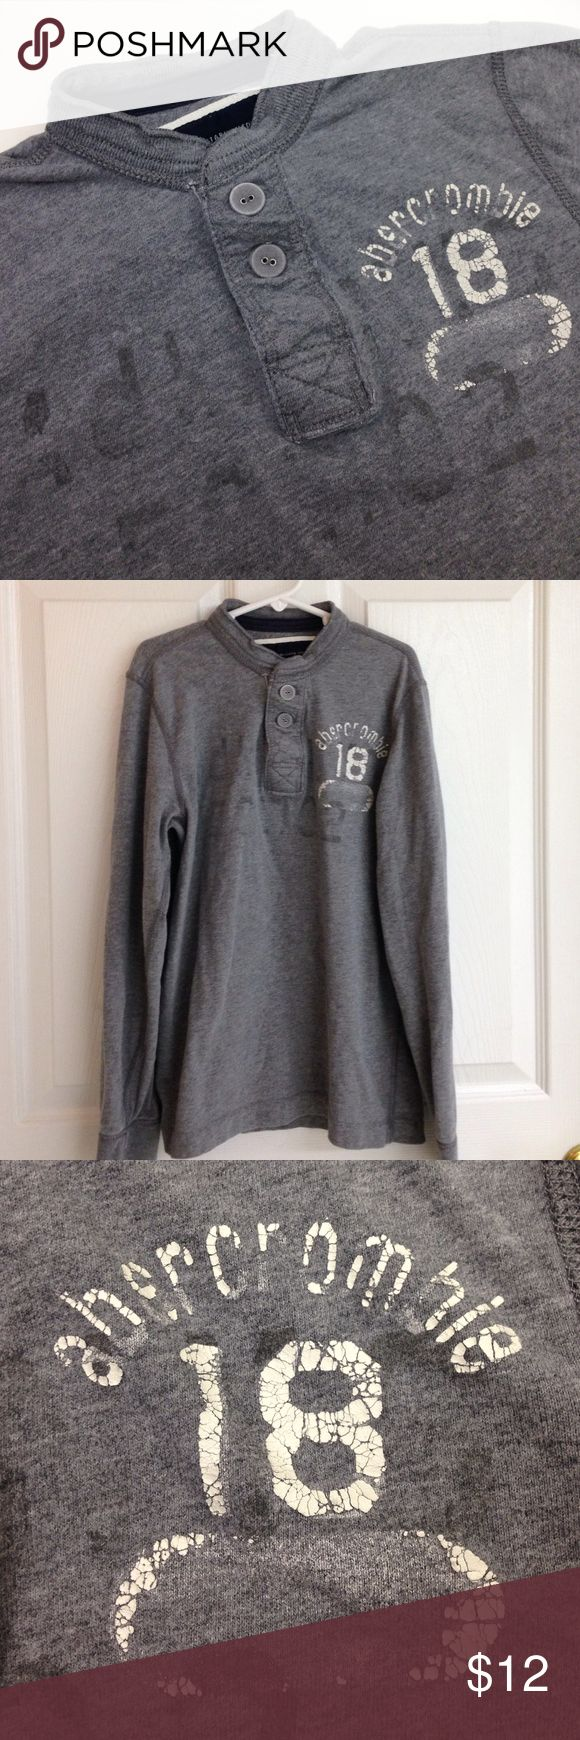 Abercrombie Henley Long Sleeve Shirt abercrombie long sleeve Henley shirt. Size M. 100% cotton in very good condition. abercrombie brand is for young children abercrombie Shirts & Tops Tees - Long Sleeve